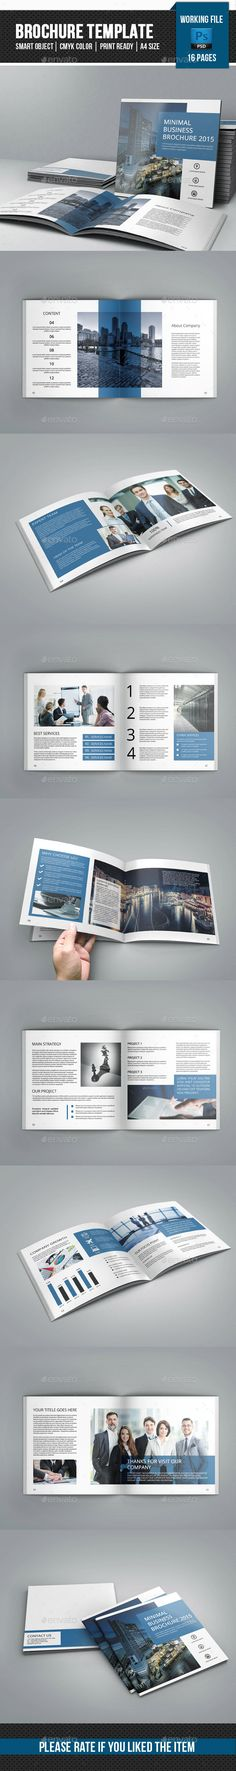 Corporate Square Brochure Template #brochure Download: http://graphicriver.net/item/corporate-square-brochurev26/11454161?ref=ksioks